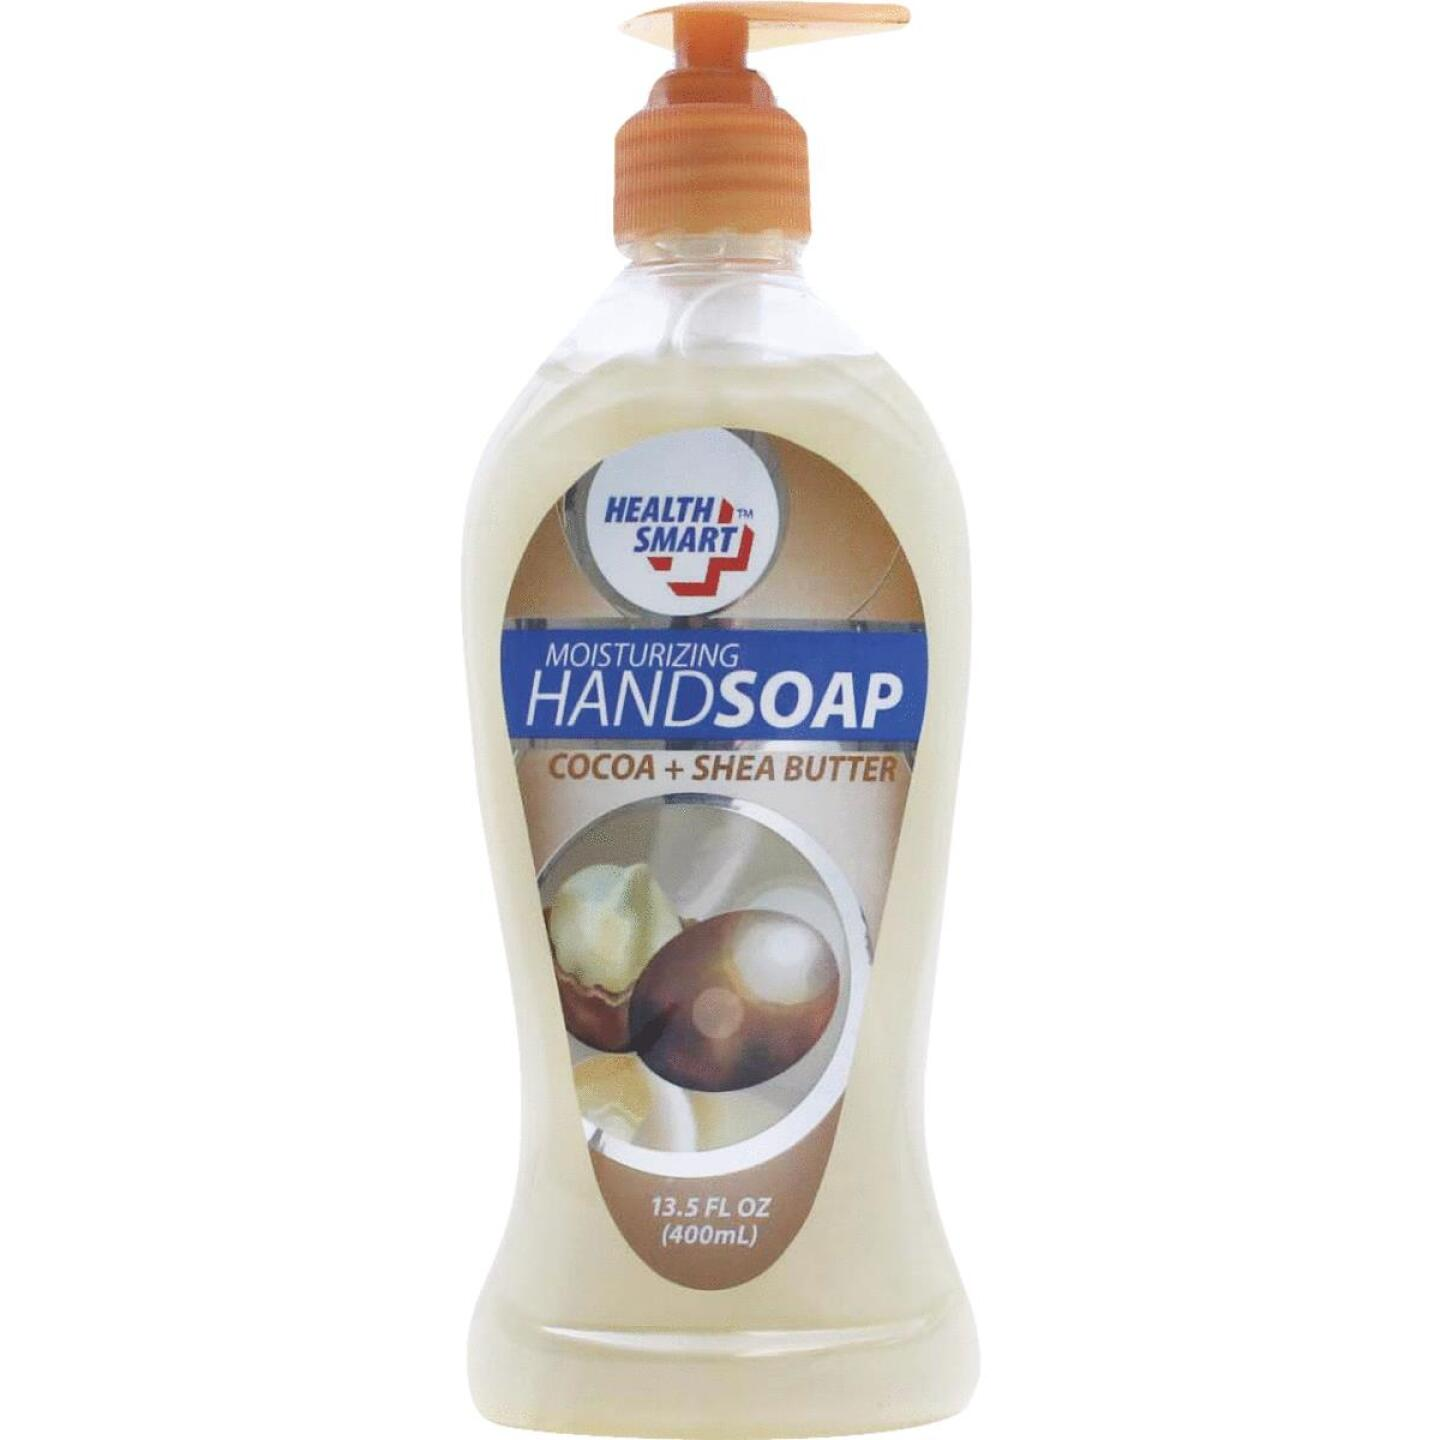 Health Smart Shea Butter Therapy Liquid Hand Soap Image 1